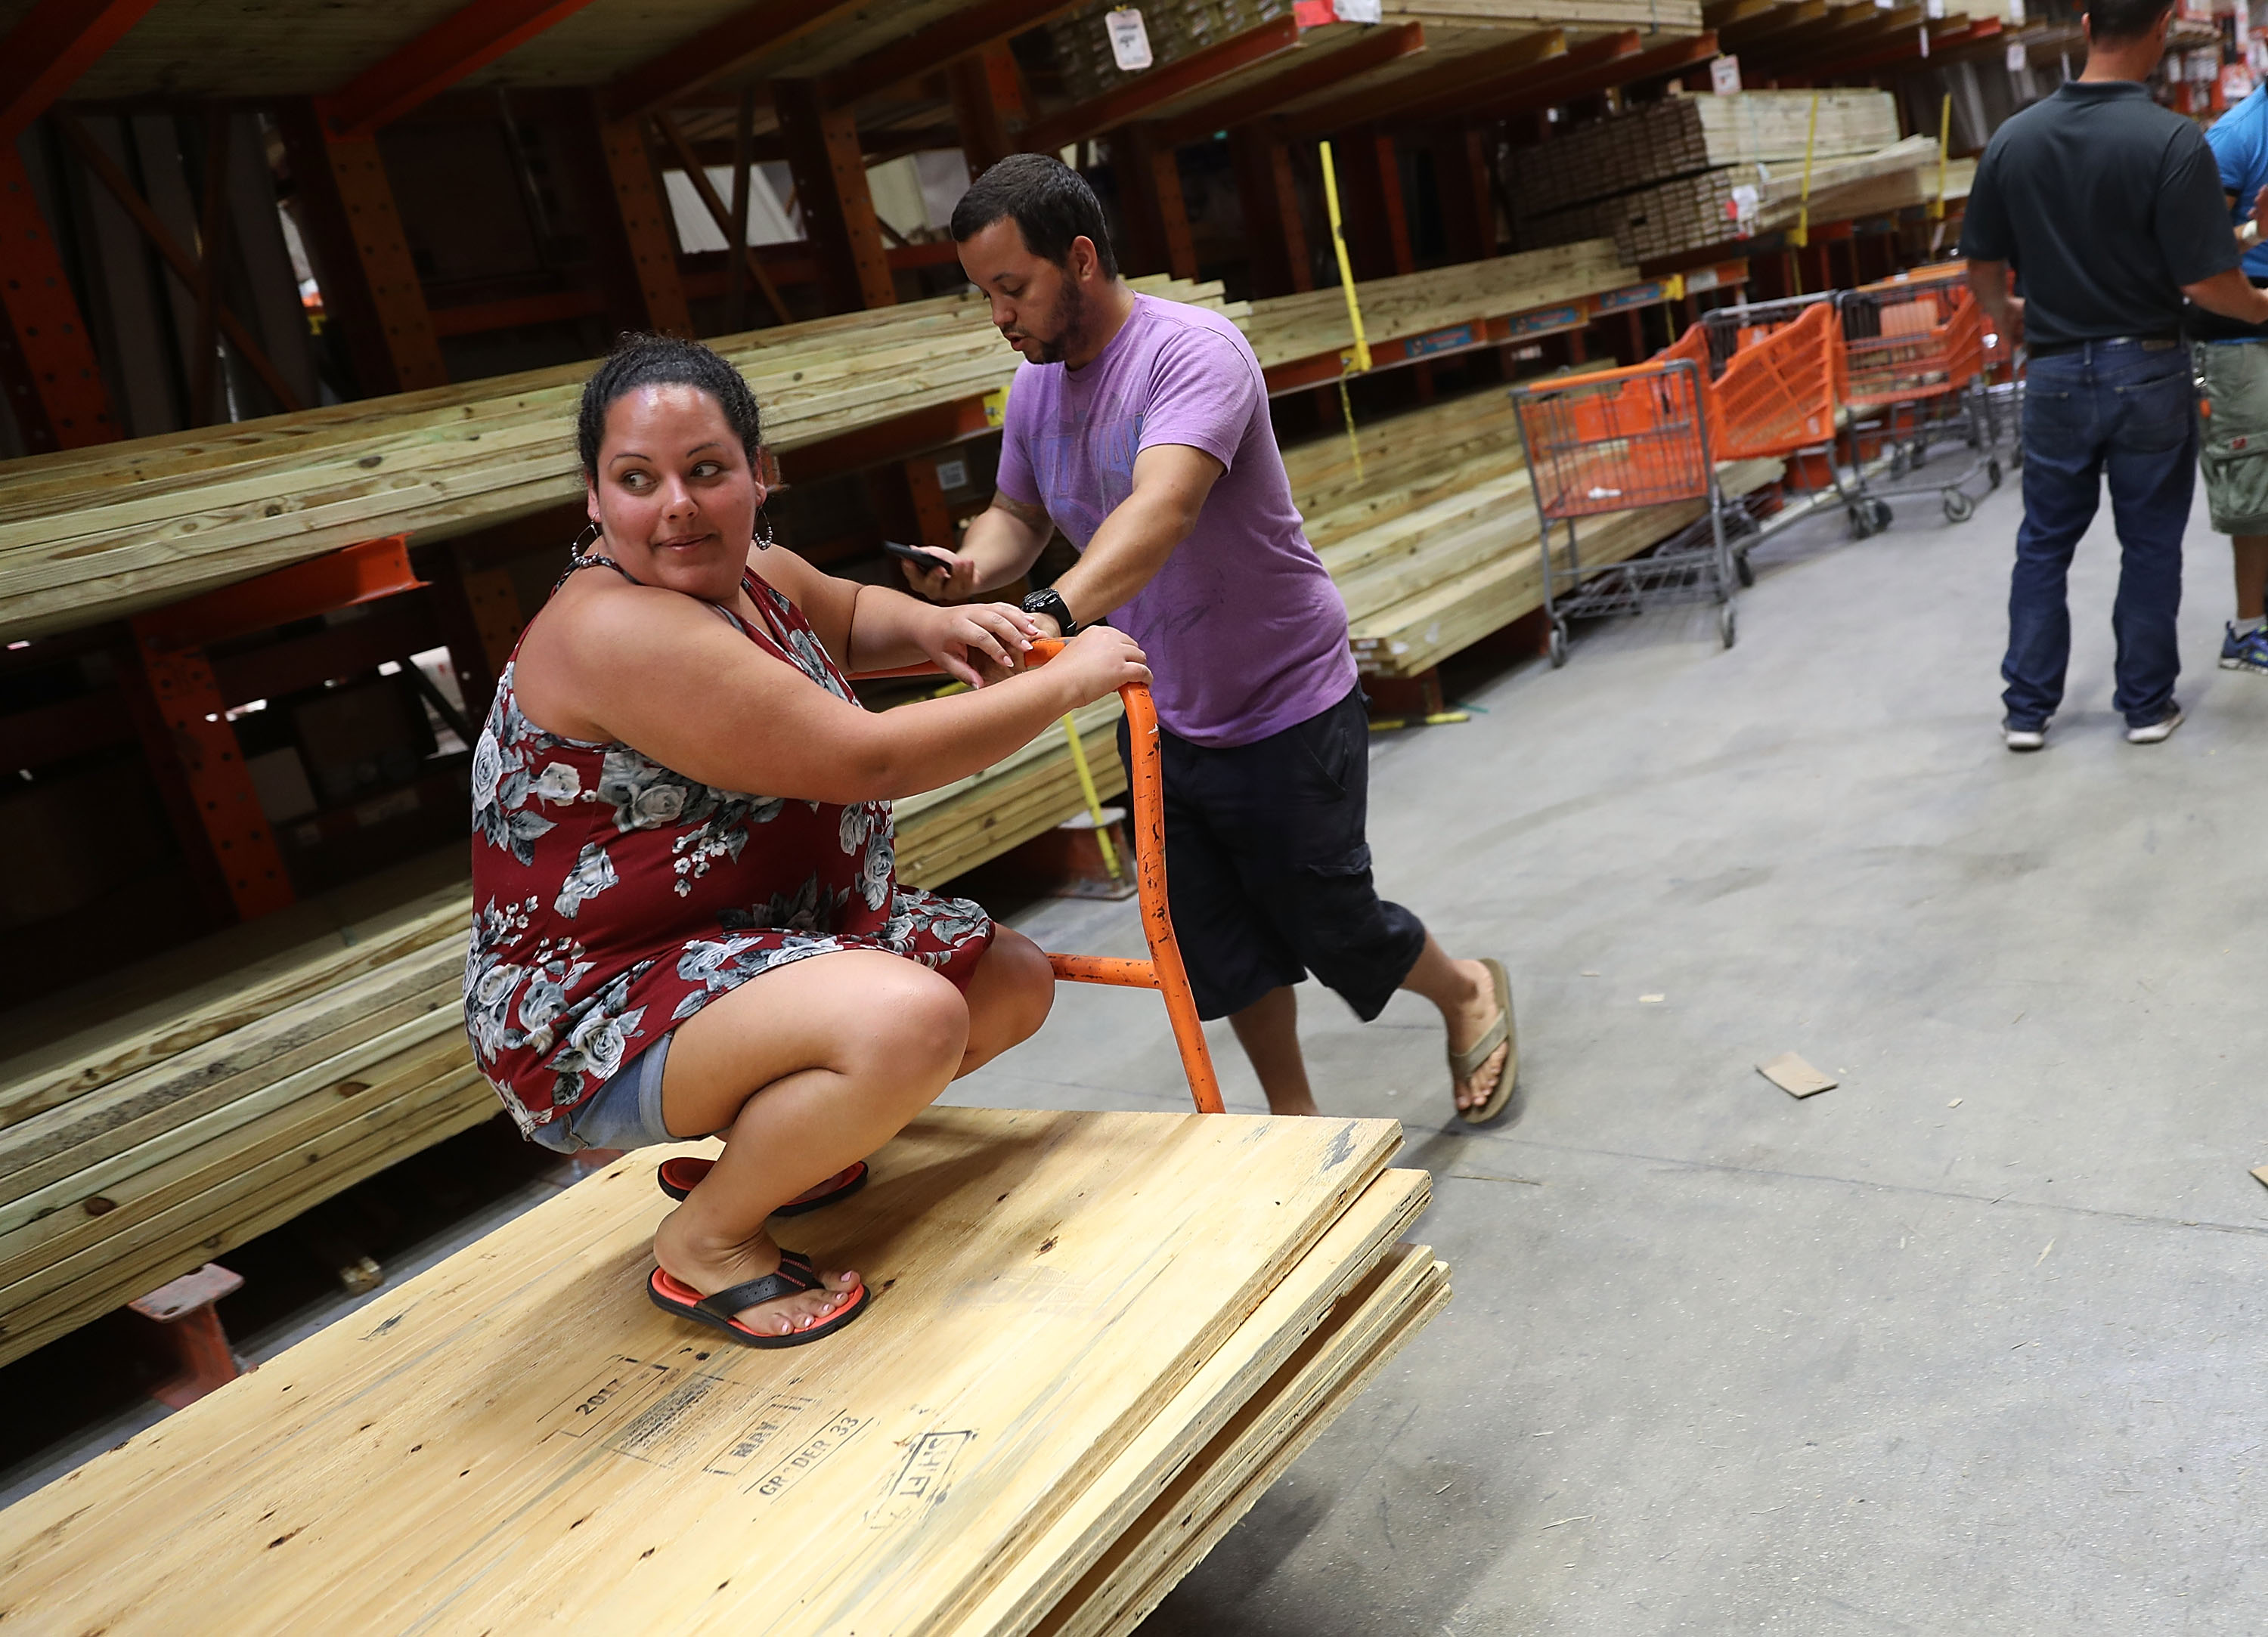 People purchase plywood at The Home Depot as they prepare for Hurricane Irma on September 6, 2017 in Miami, Florida.